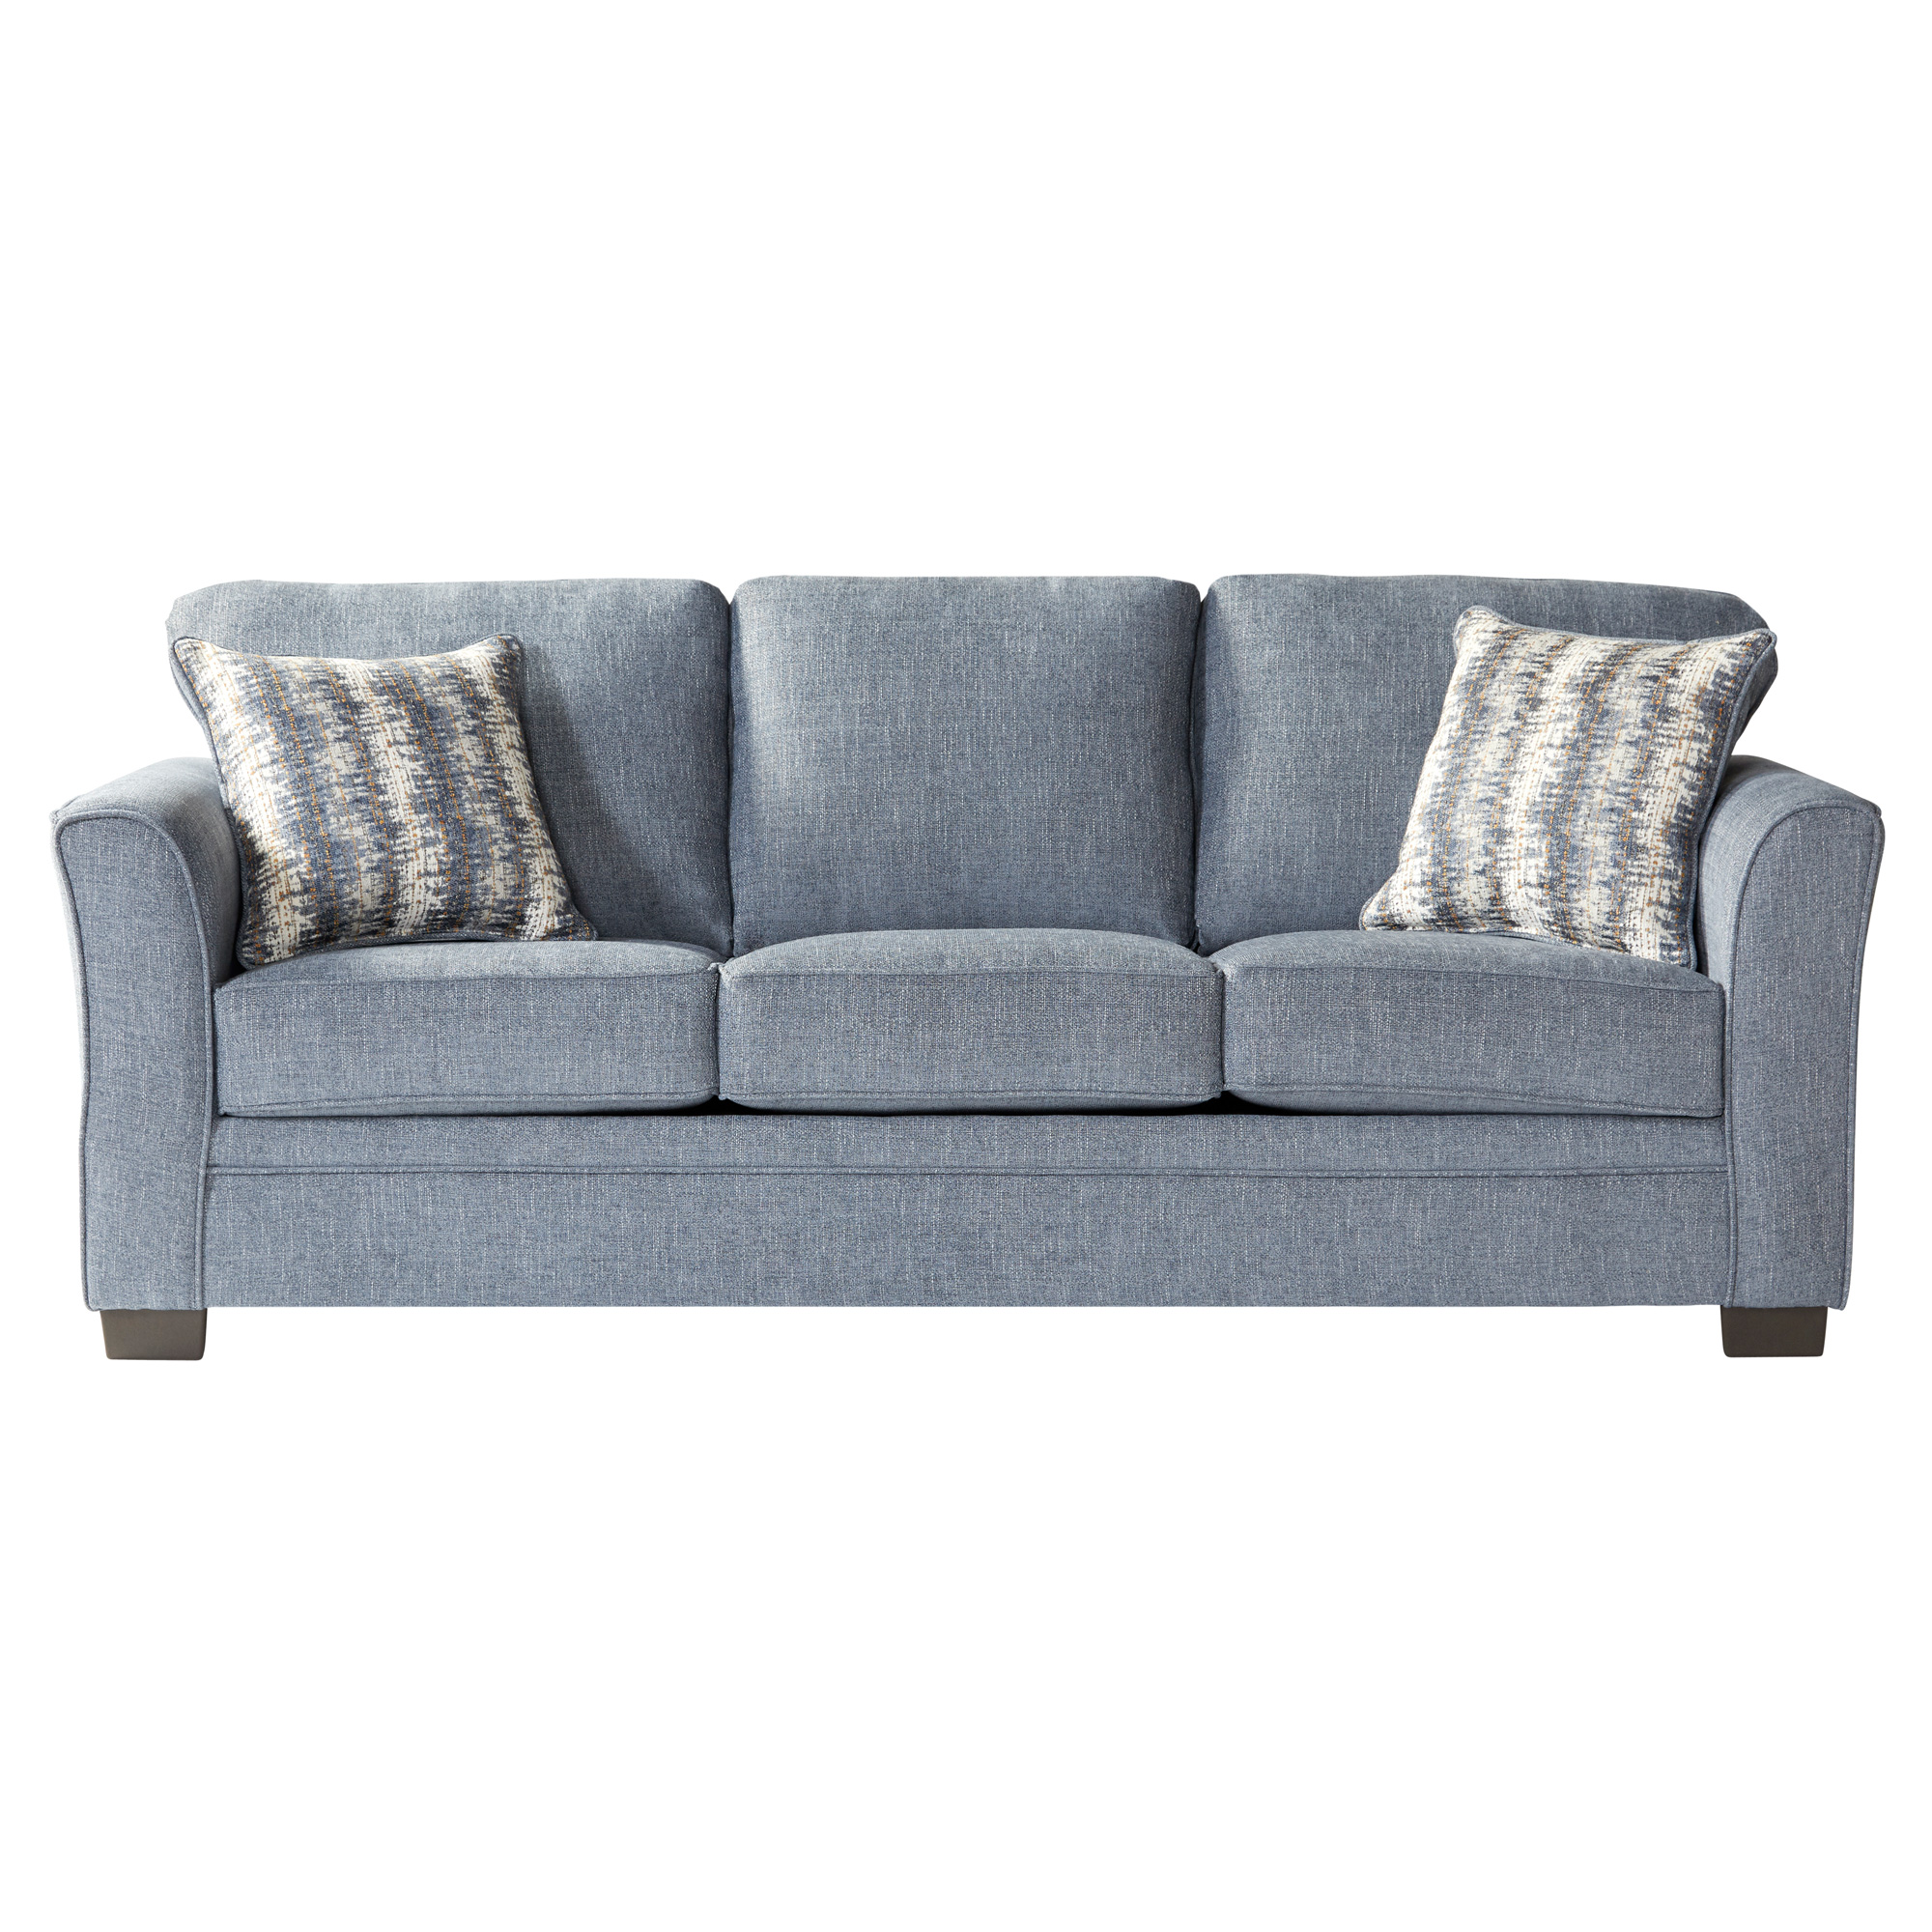 Serta Upholstery By Hughes Furniture | Bolster Ocean Queen Sleeper Sofa